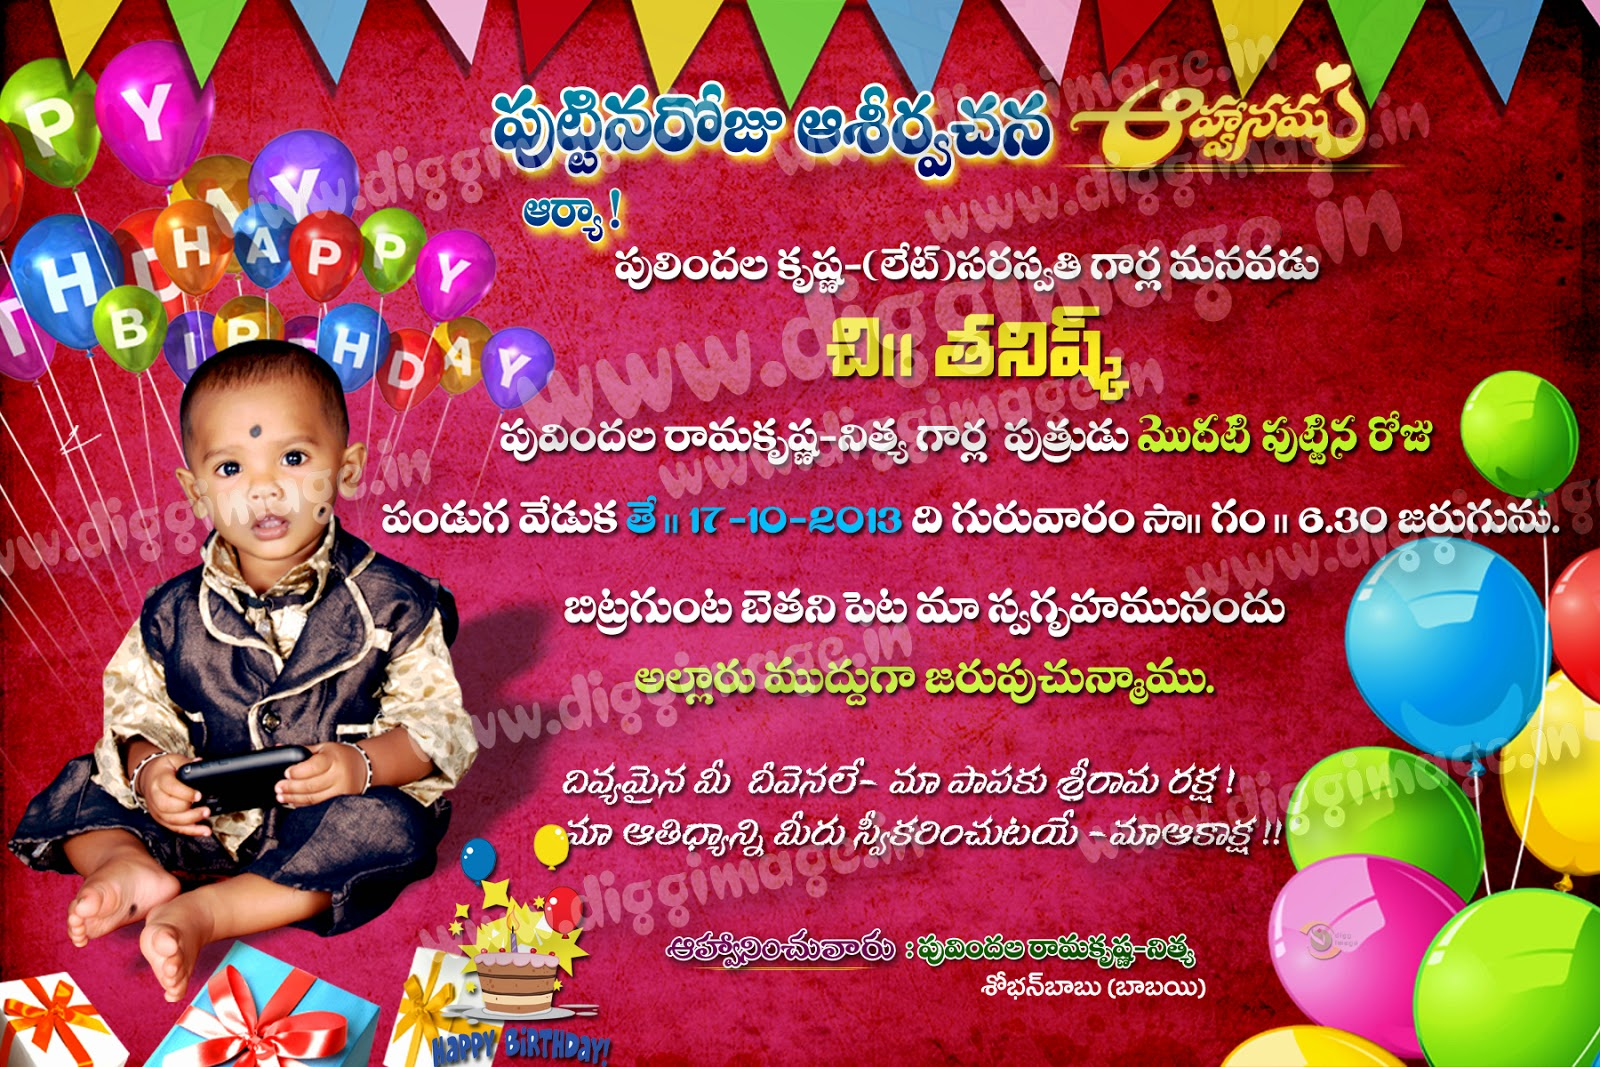 Birthday invitation card design by diggimage d i g g i m a g e birthday invitation card design by diggimage d i g g i m a g e filmwisefo